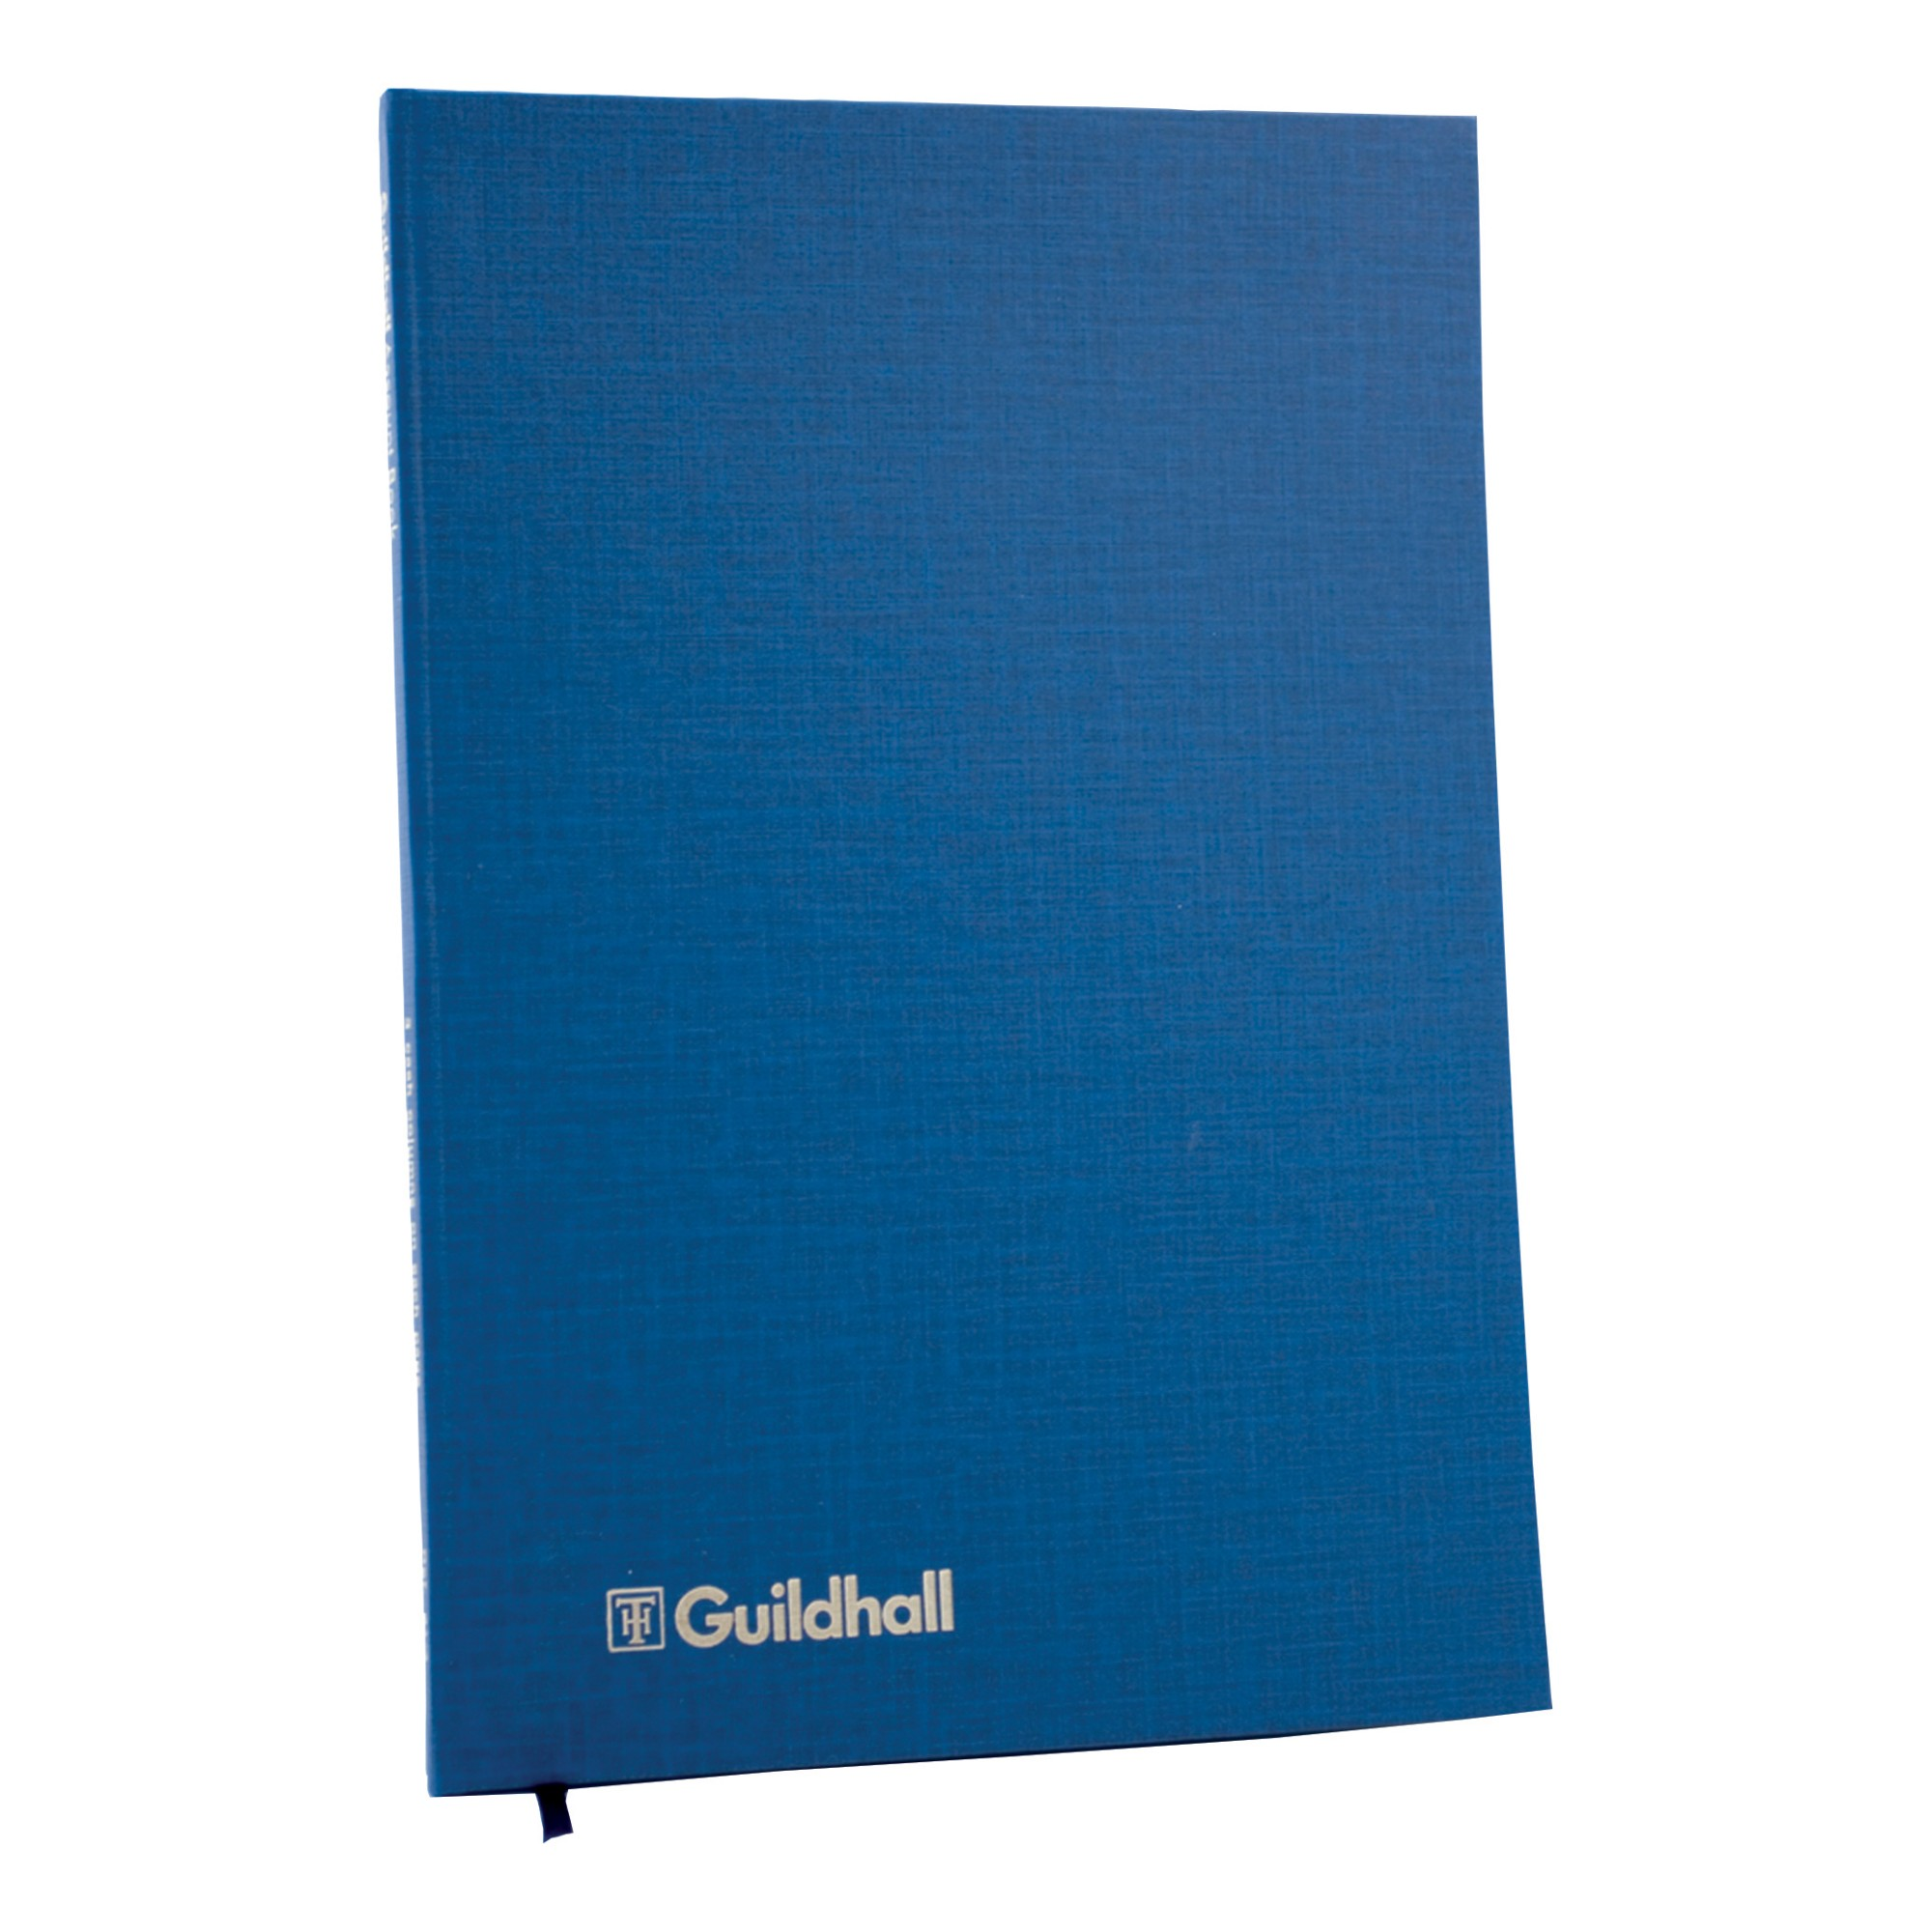 Guildhall 31/3Z Accounts Book 1015